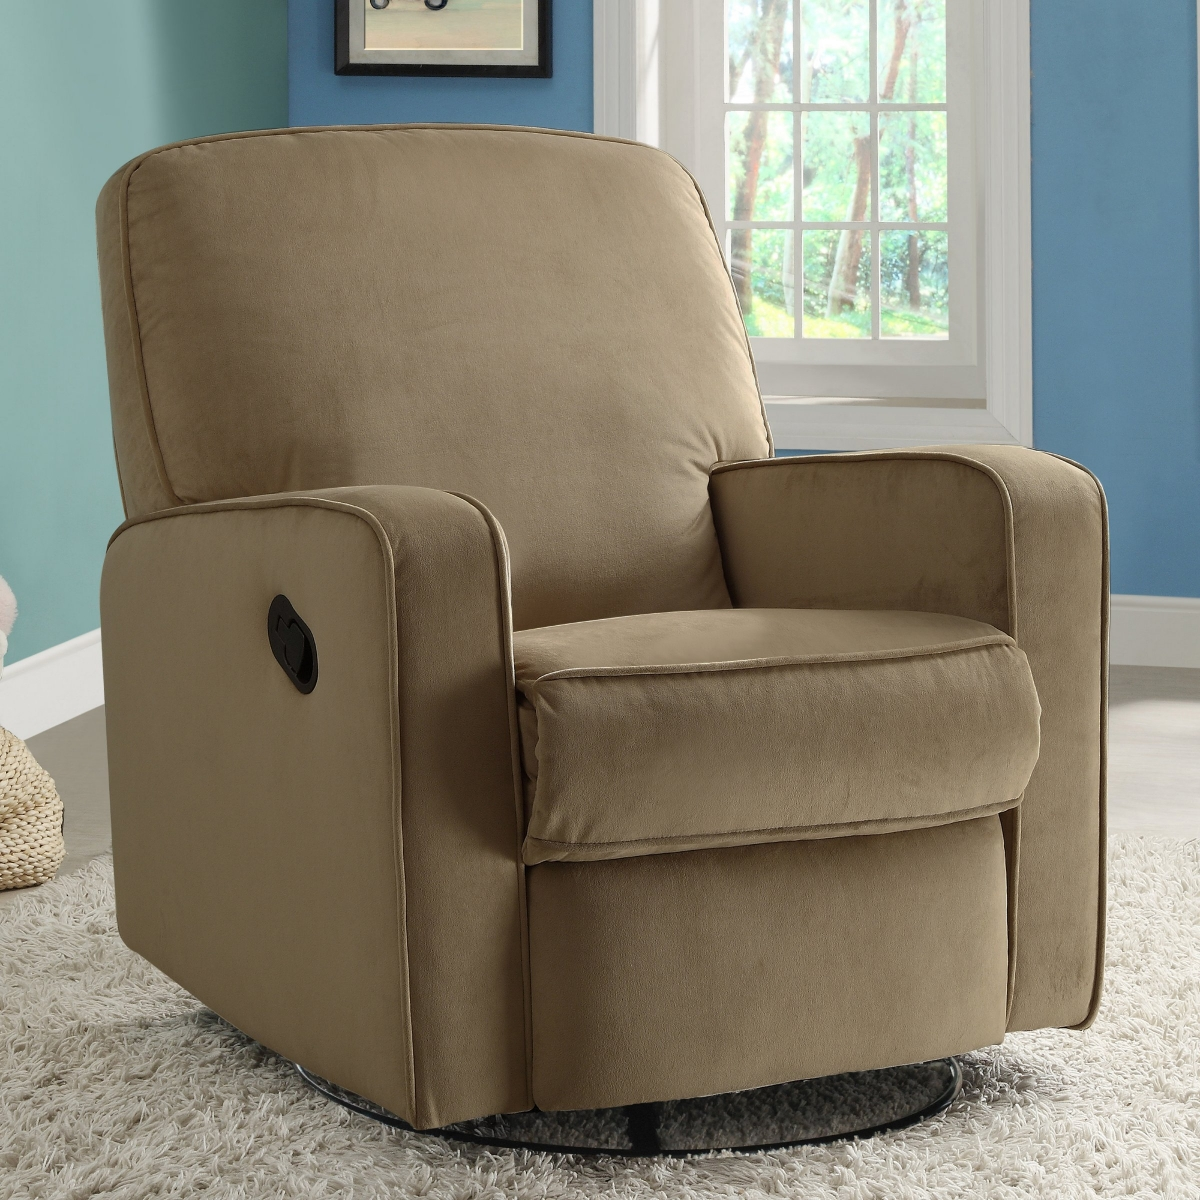 Amazing fabric upholstered glider rocker with armchairs and wooden laminate floor for living room